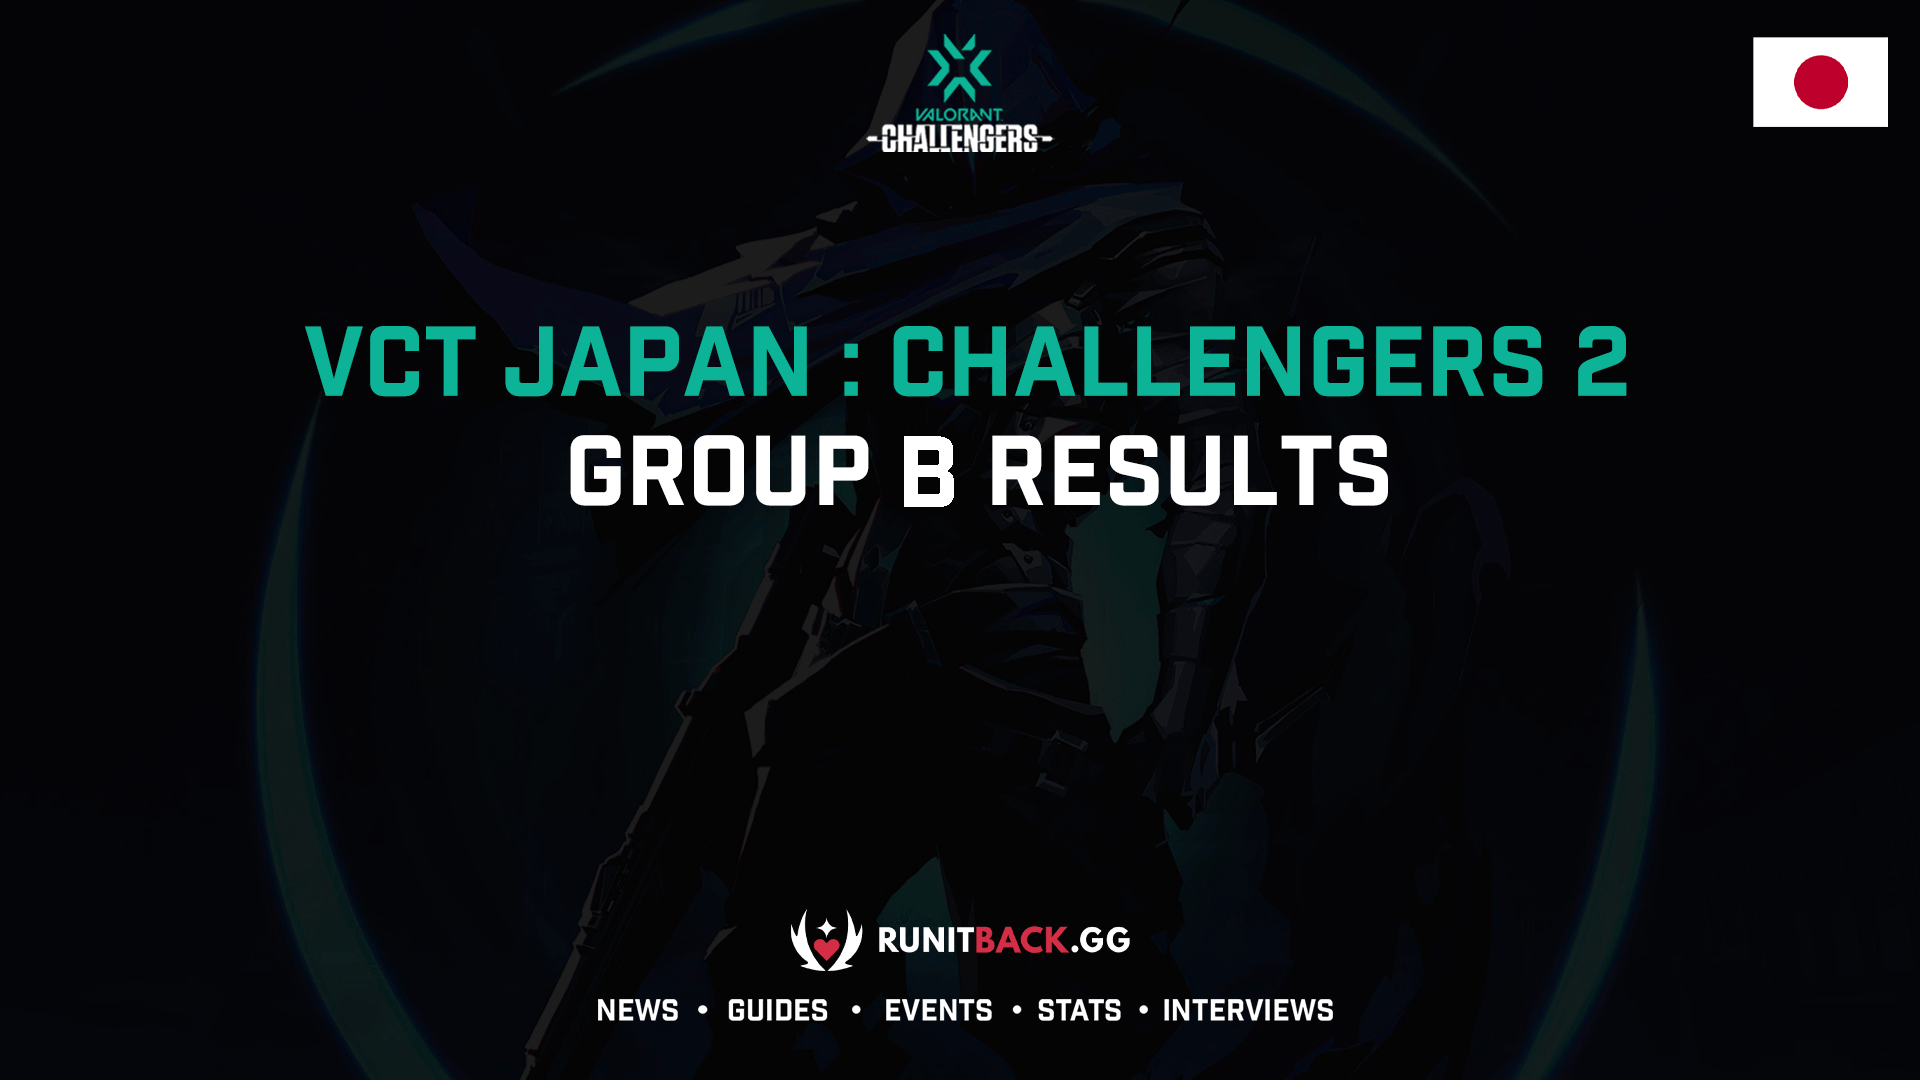 VCT Japan: Challengers 2 Group B Results